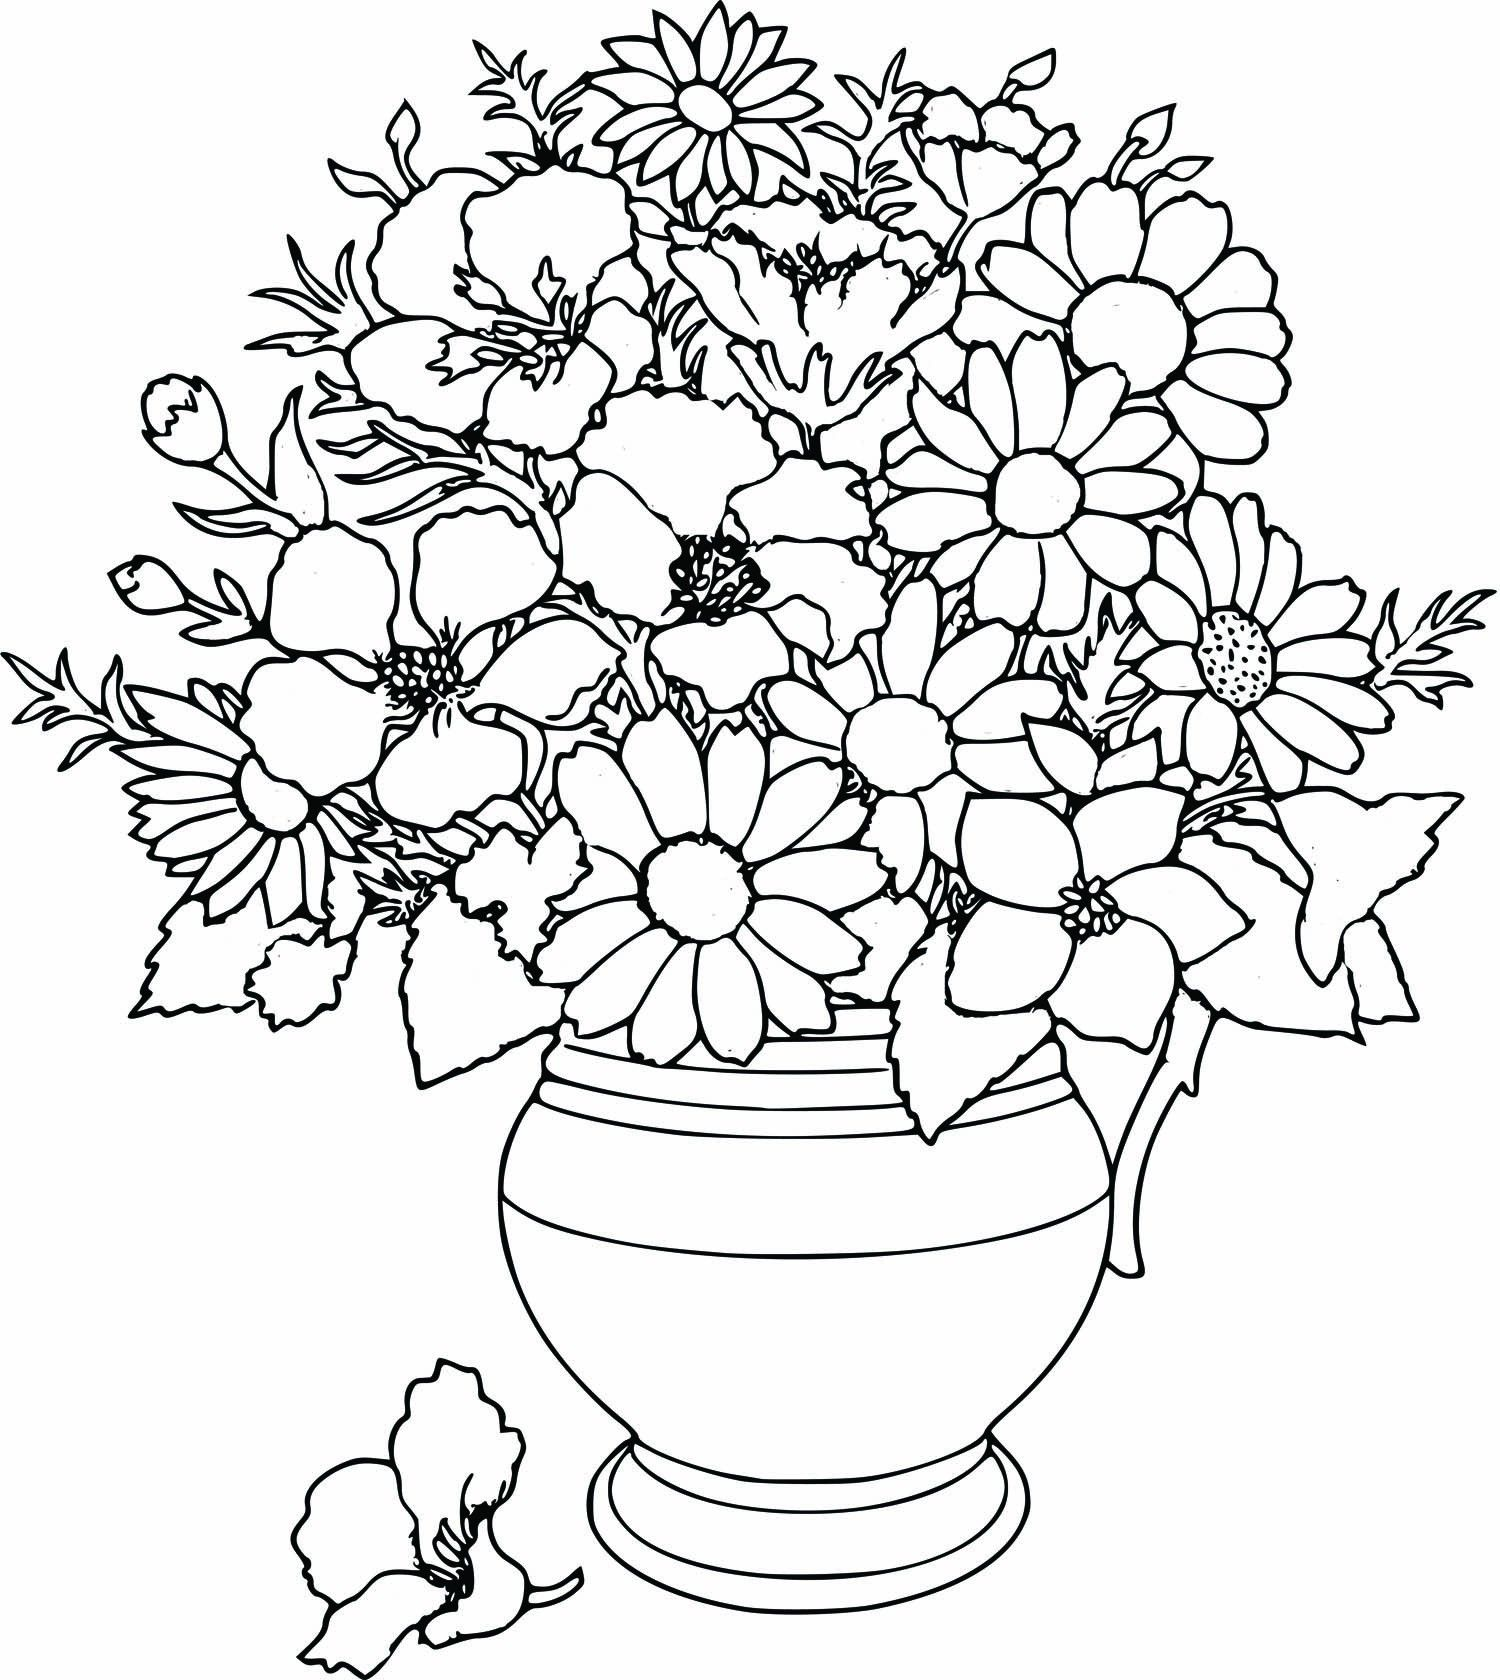 girls planting flowers coloring pages - photo#42